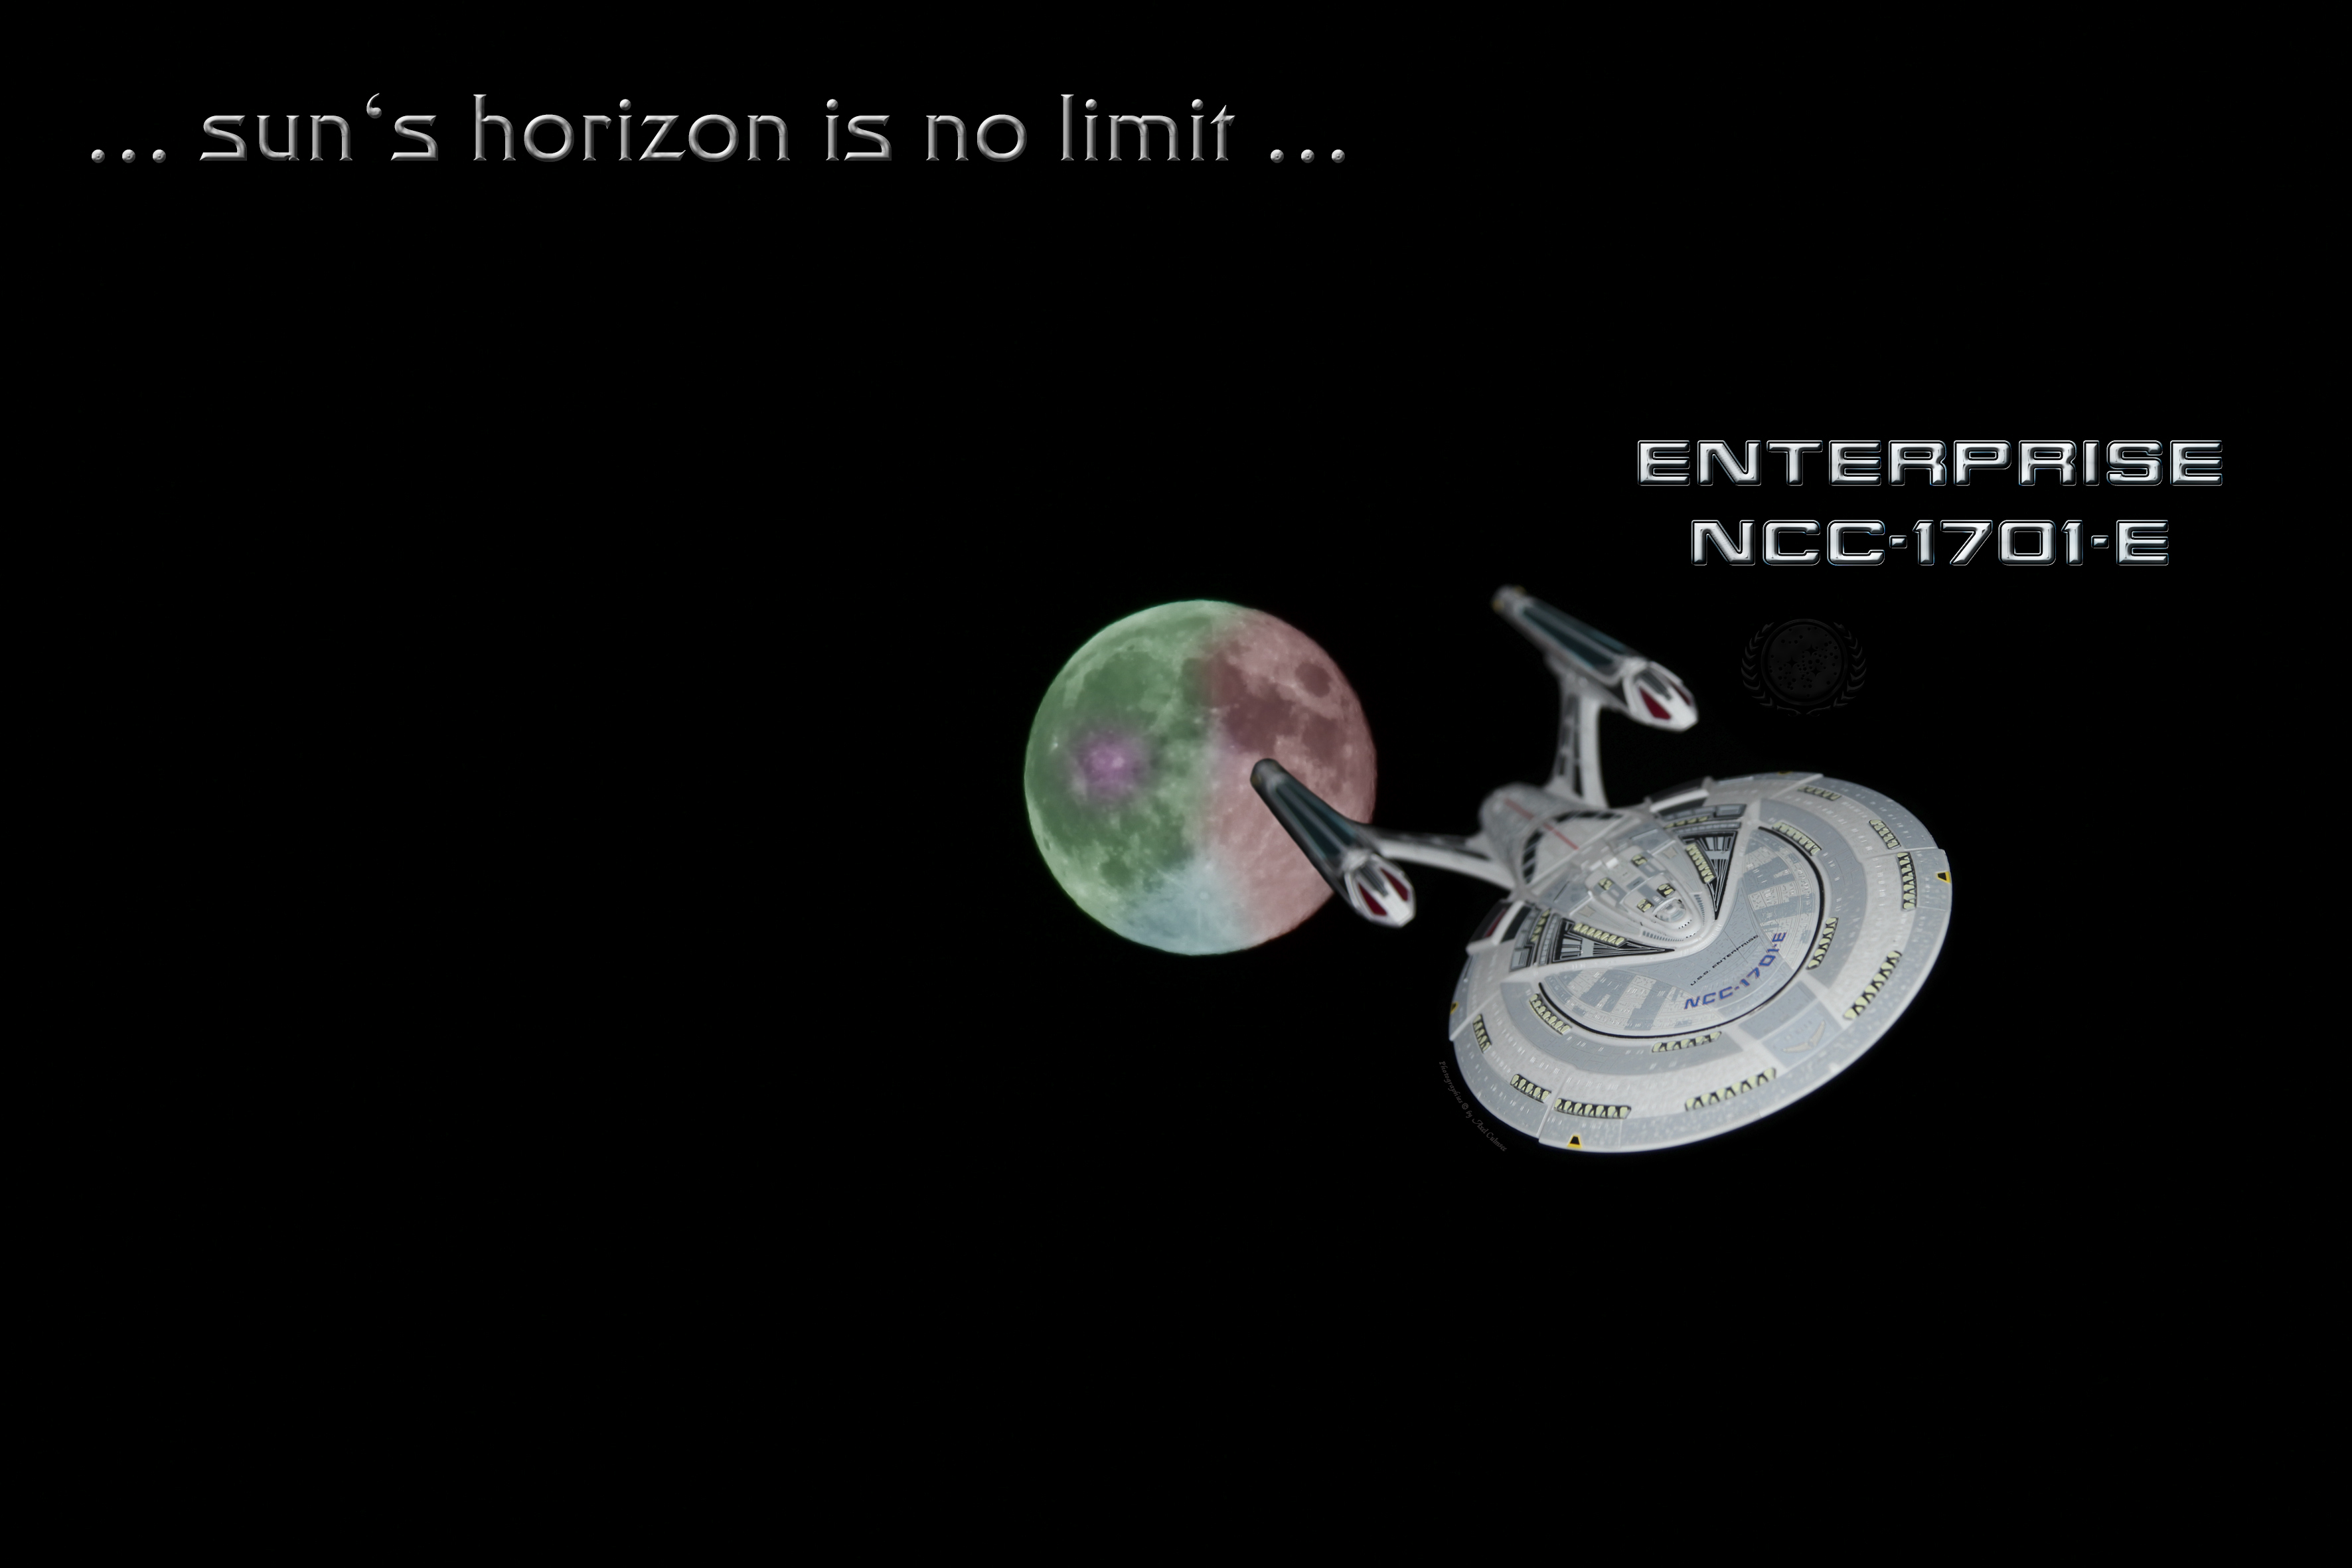 ENTERPRISE-E Horizon is no limit